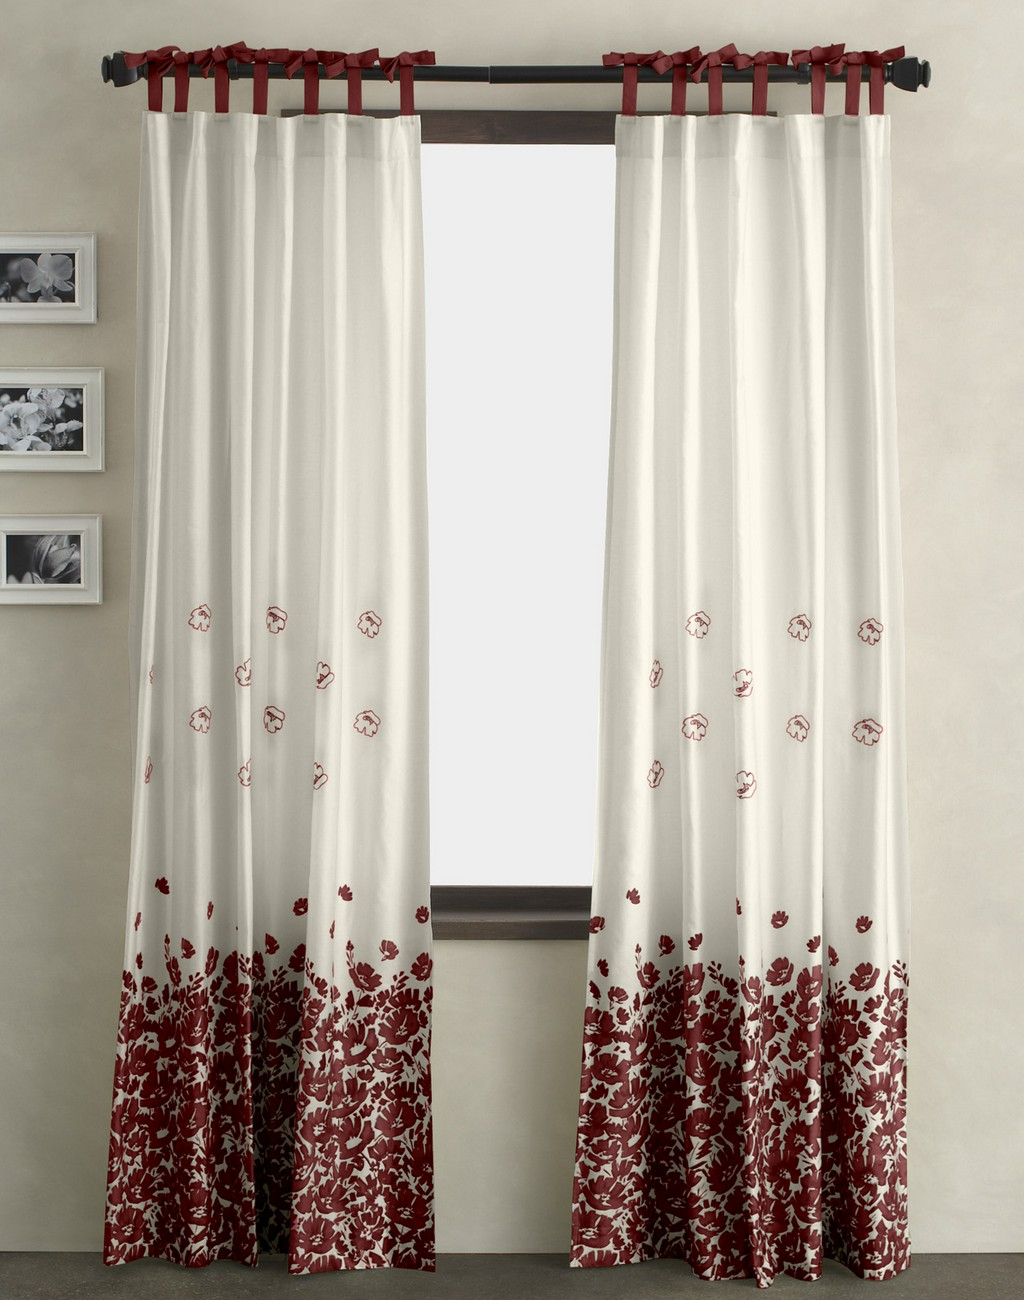 kitchen curtains solid taupe, sheer curtains, beaded curtains, thermal curtains